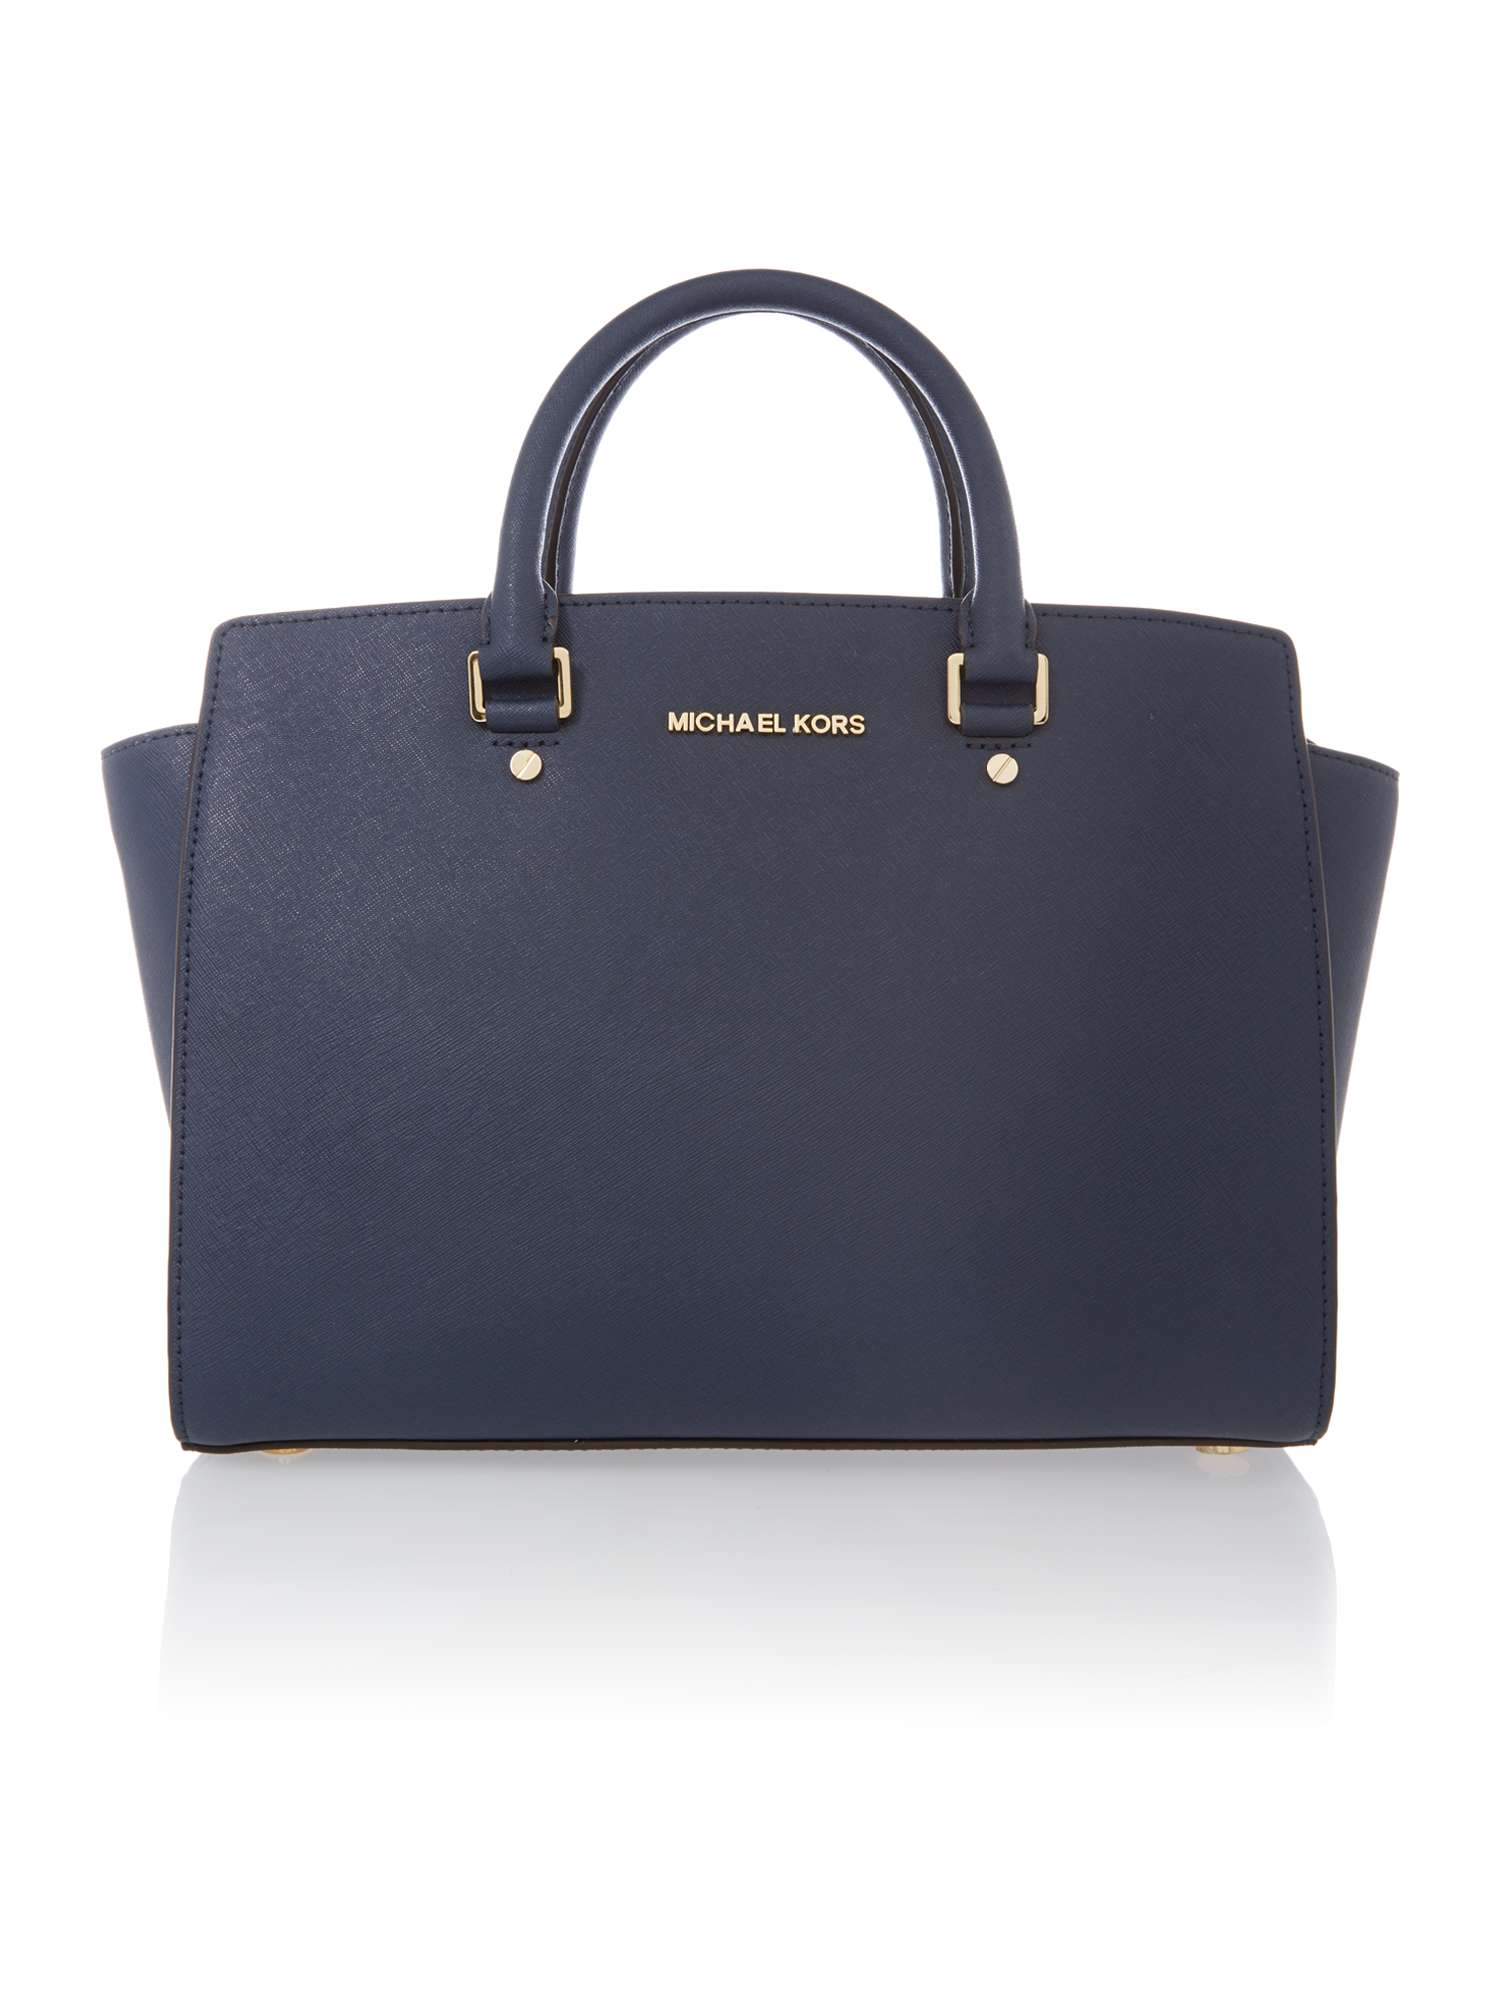 cd0b9be73c53 get michael michael kors leather large ciara satchel in navy dd1f0 d9efe;  sweden michael kors selma navy tote bag cce96 81183